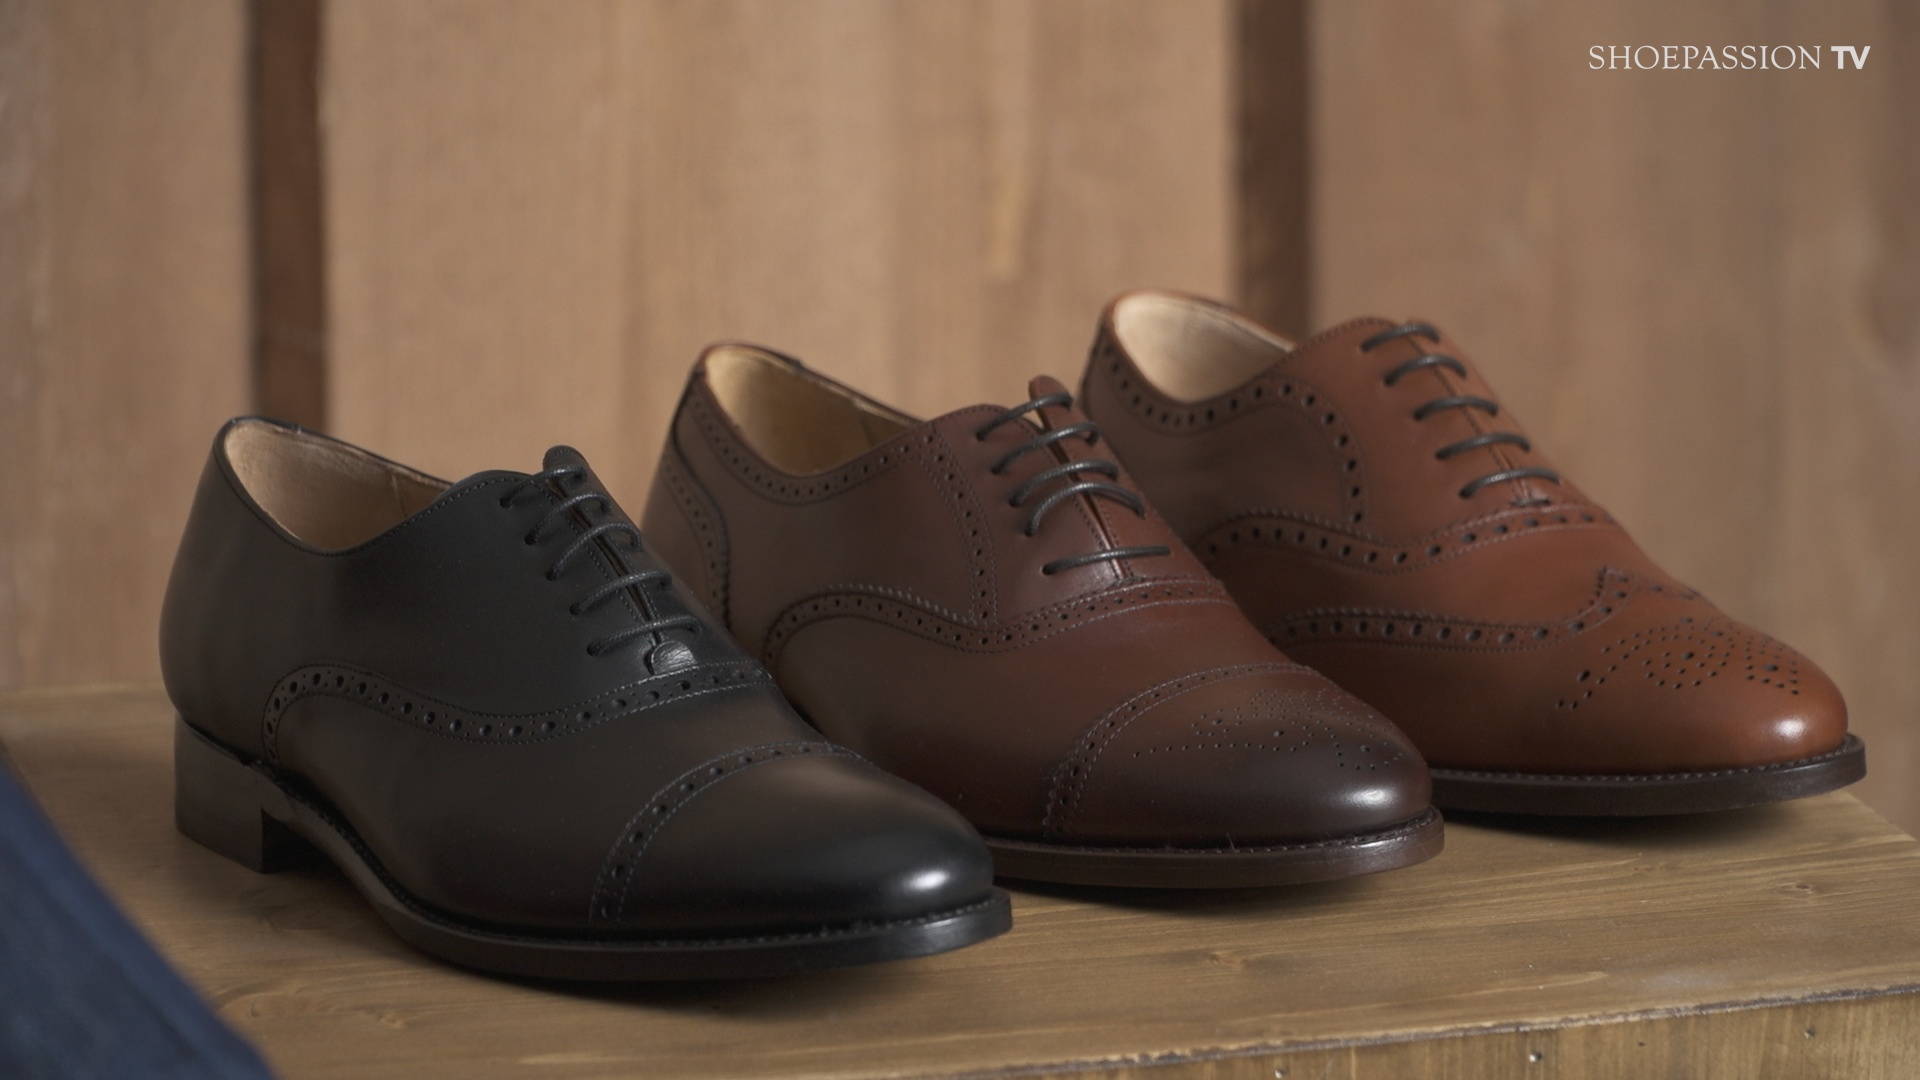 Shoepassion TV: Brogues